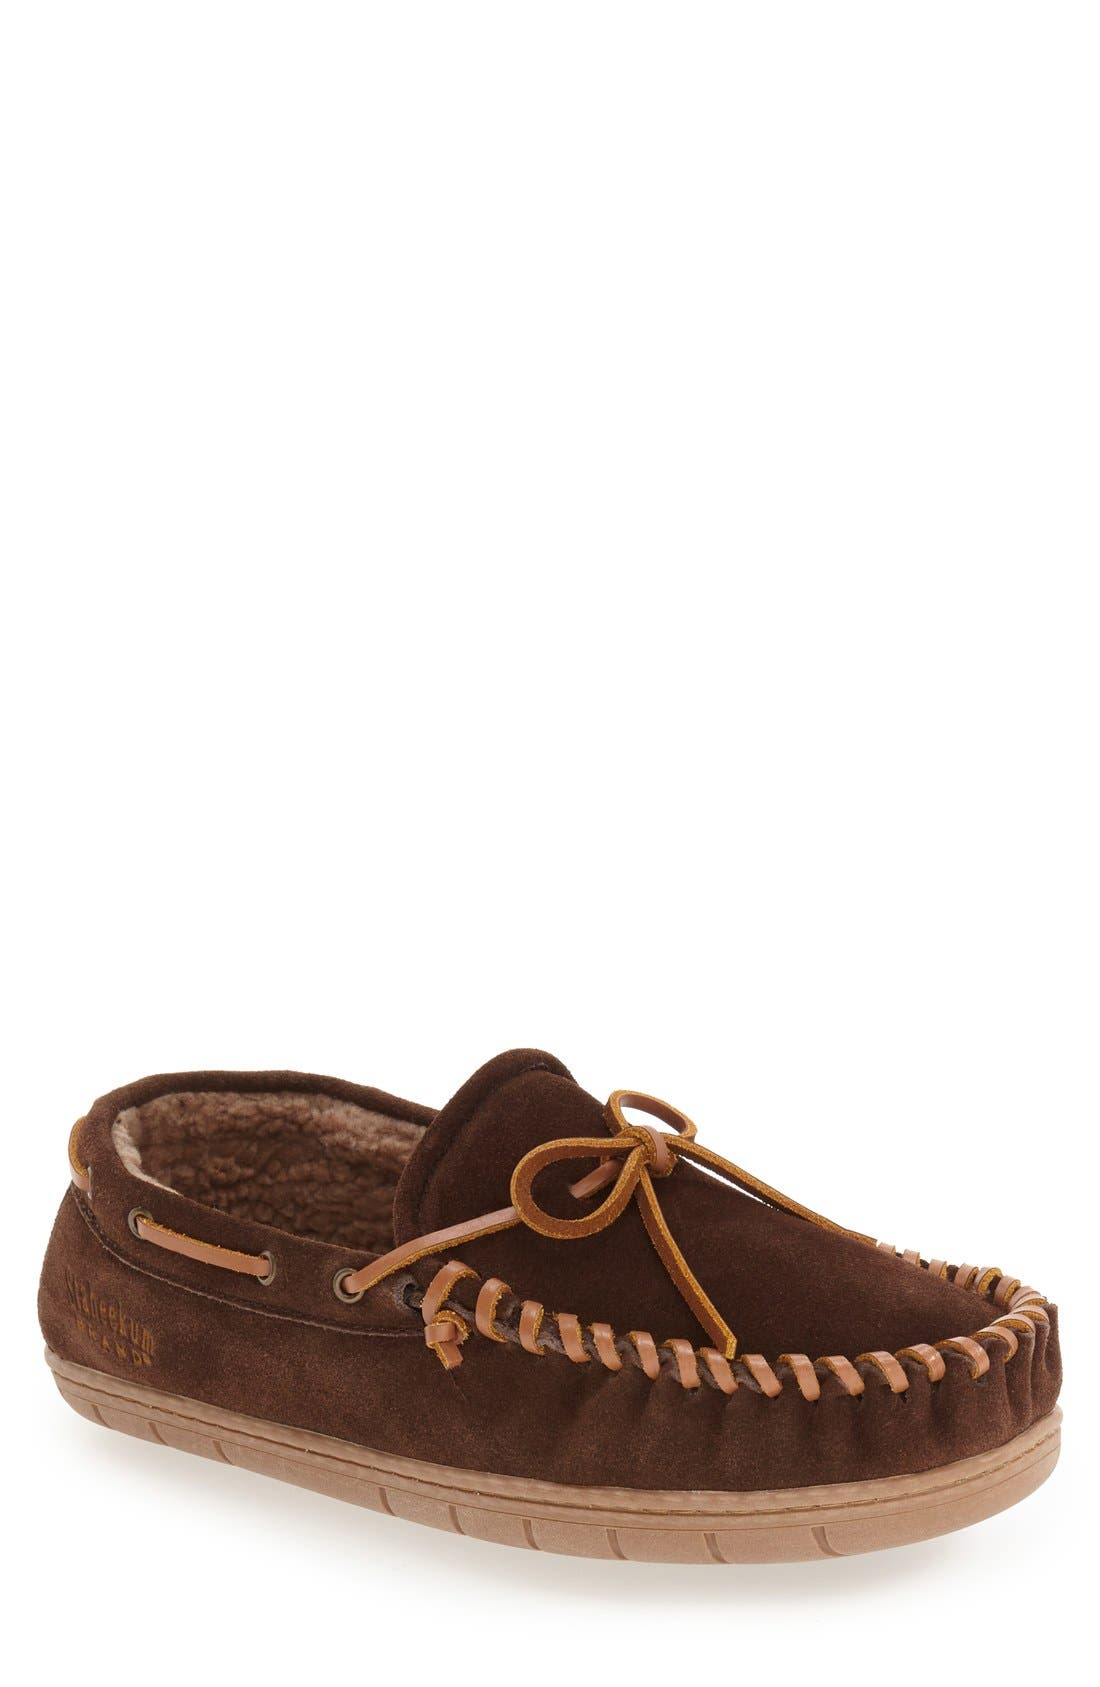 'Courier' Moccasin Slipper,                             Main thumbnail 1, color,                             Chocolate Suede